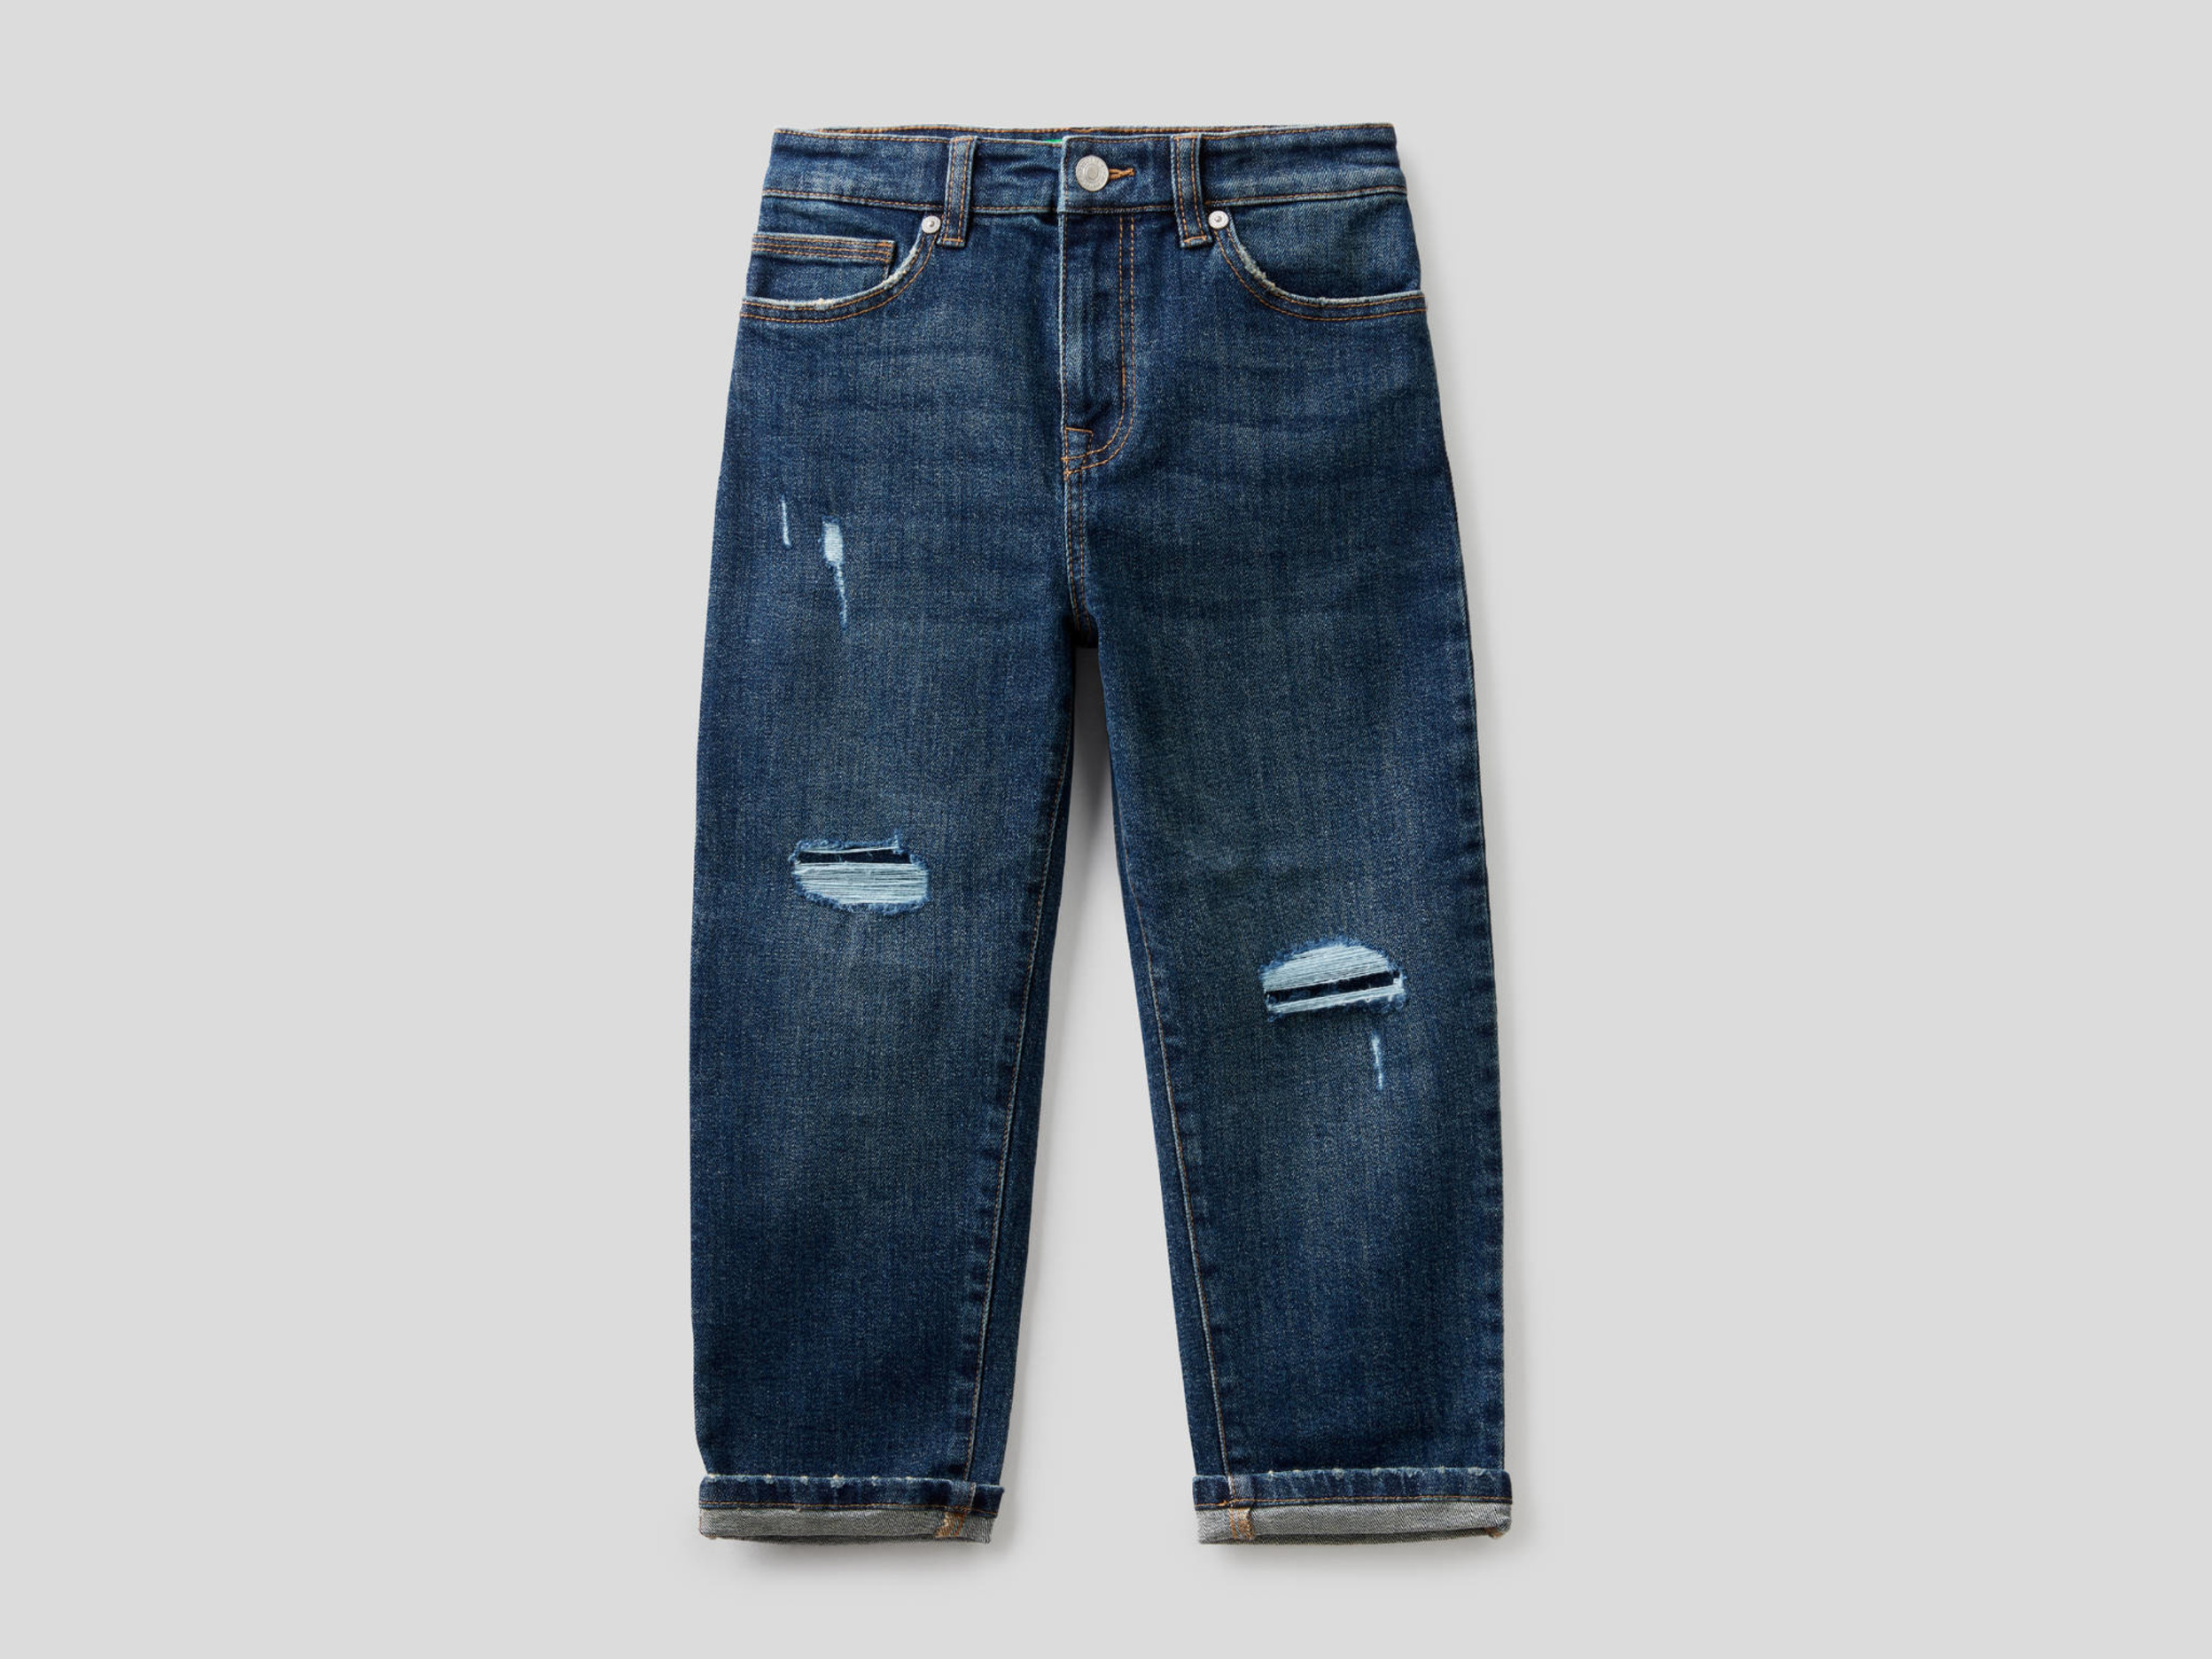 Benetton, Jeans Slouchy Con Rotture, Blu, Bambini